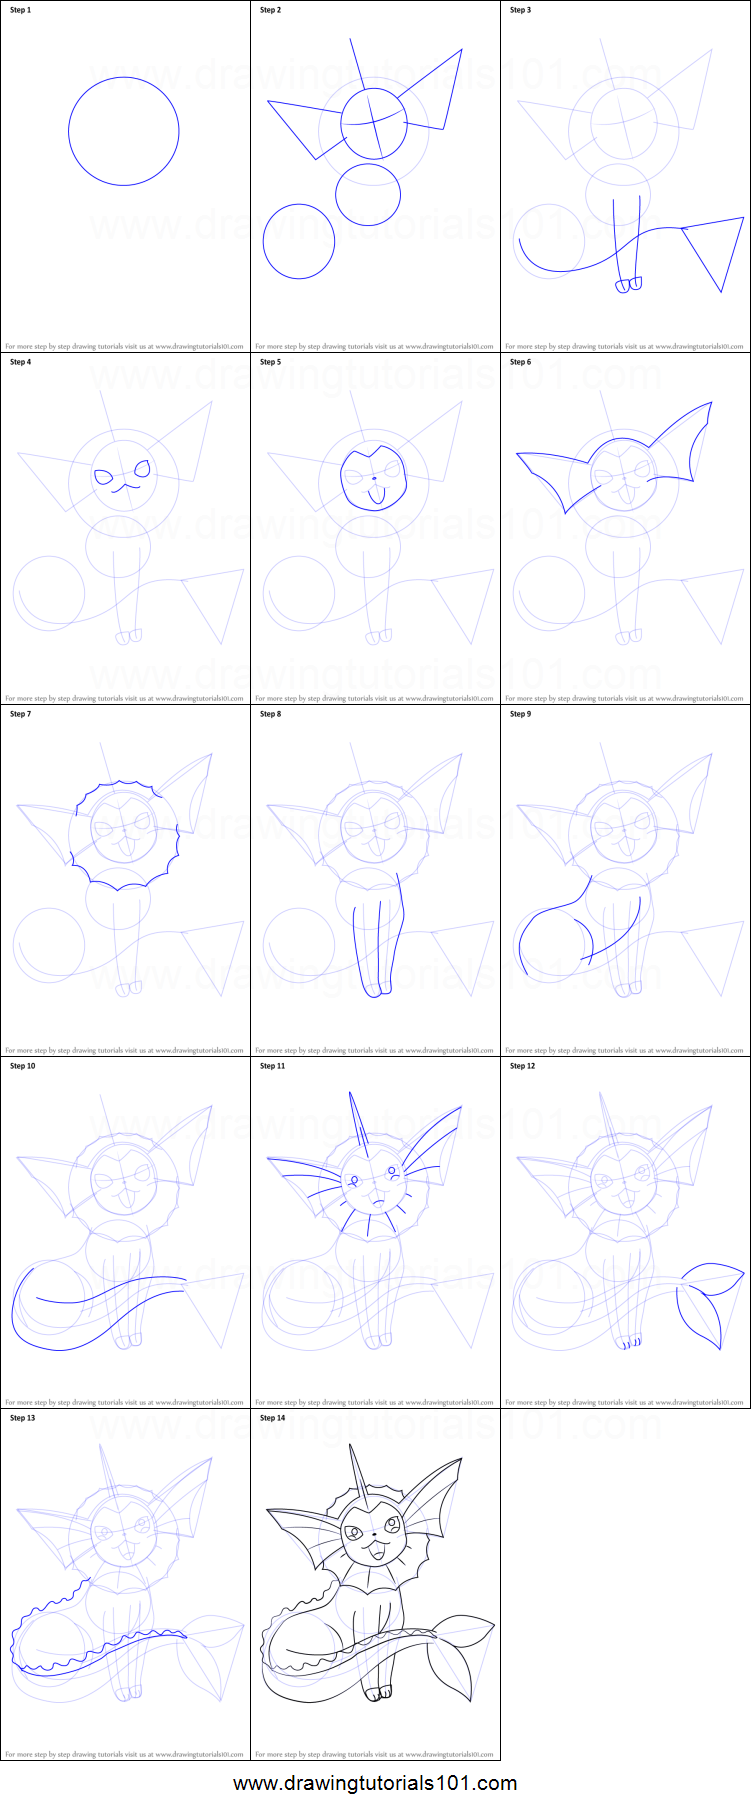 Uncategorized How To Draw Vaporeon how to draw vaporeon from pokemon printable step by drawing sheet drawingtutorials101 com